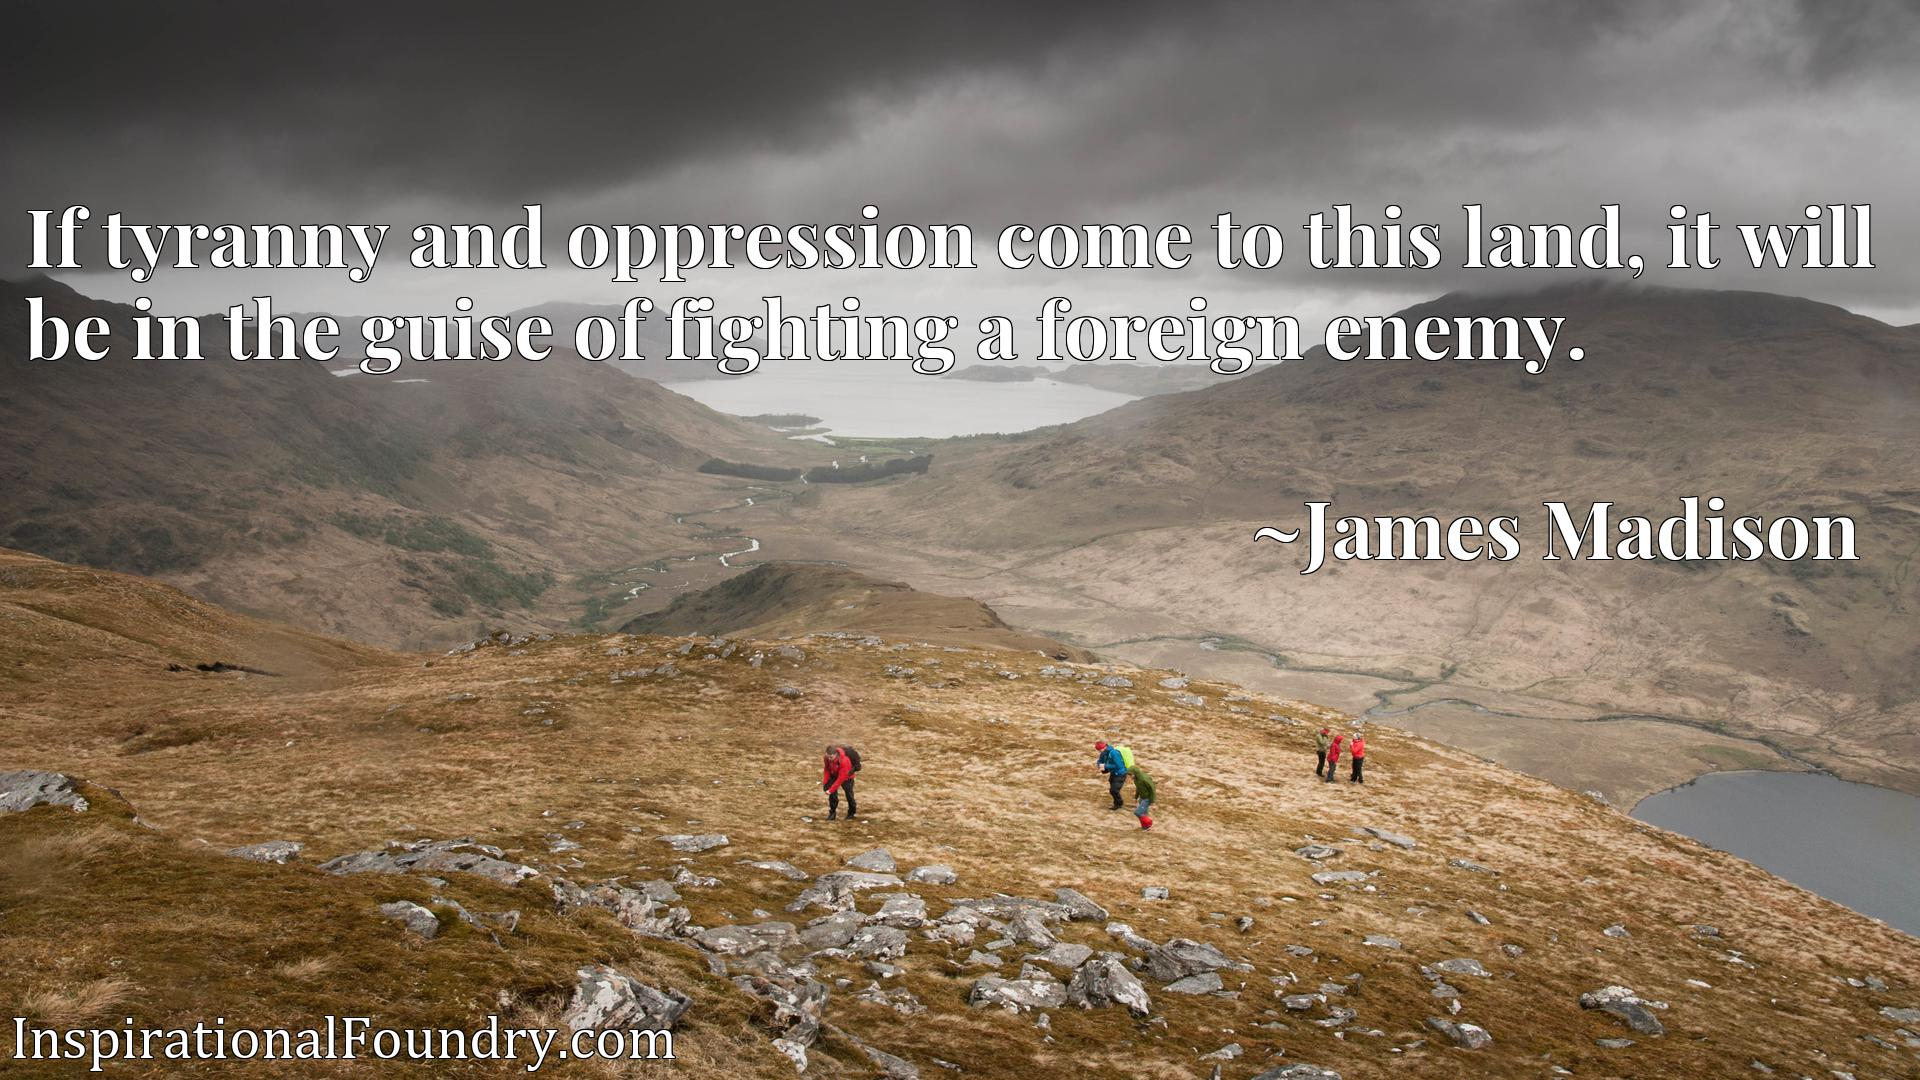 Quote Picture :If tyranny and oppression come to this land, it will be in the guise of fighting a foreign enemy.